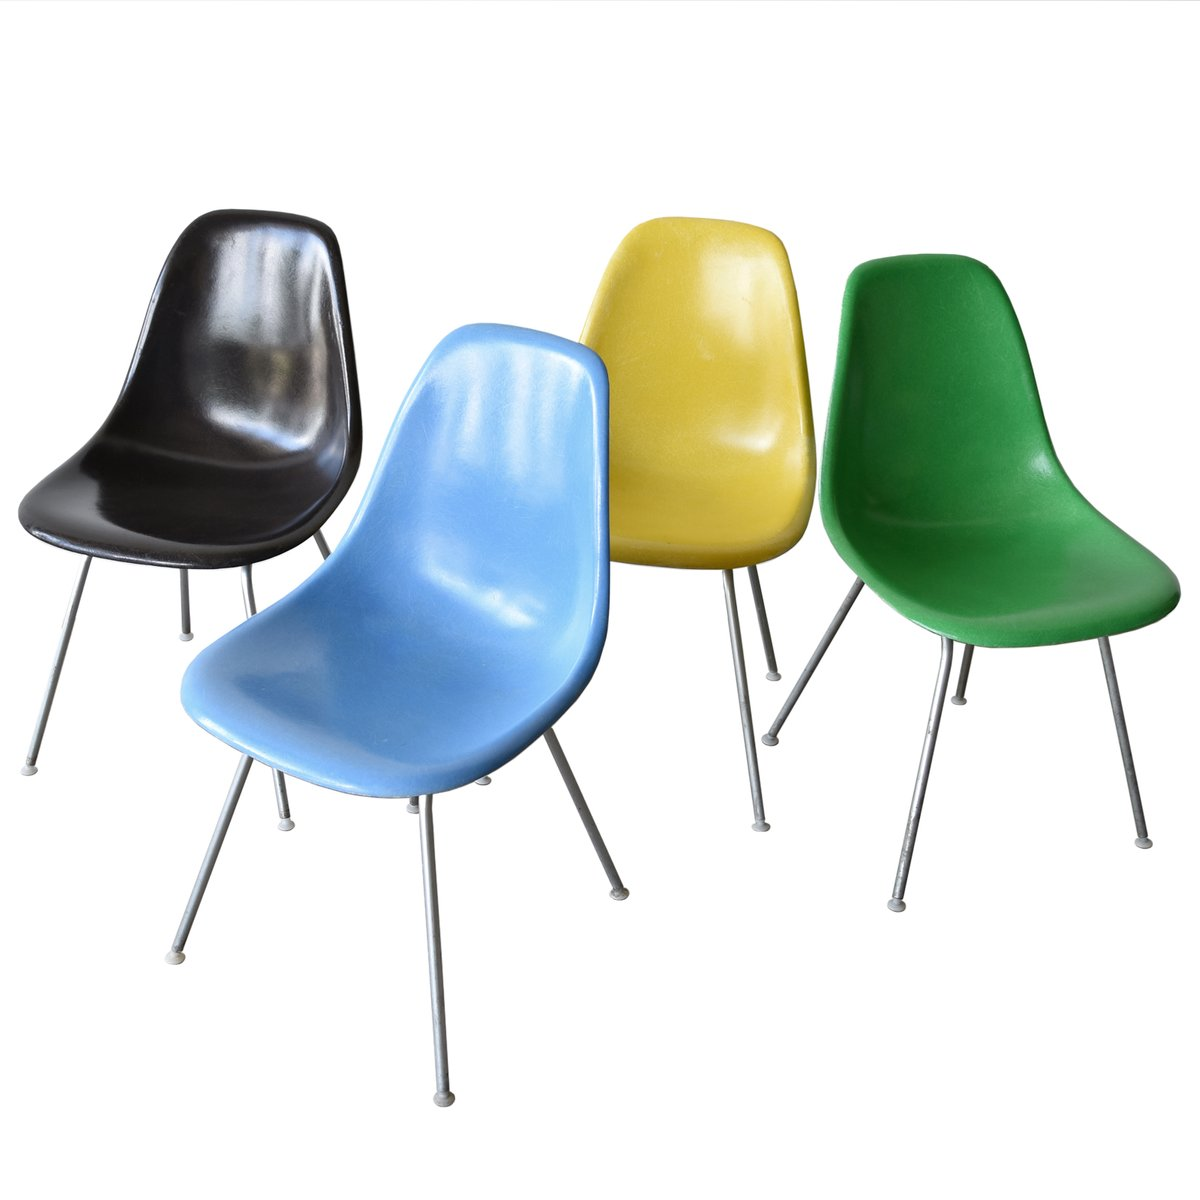 Chaise Design Eames Charles Et Ray Eames Chaise Cool Soft Pad Chaise Es With Charles